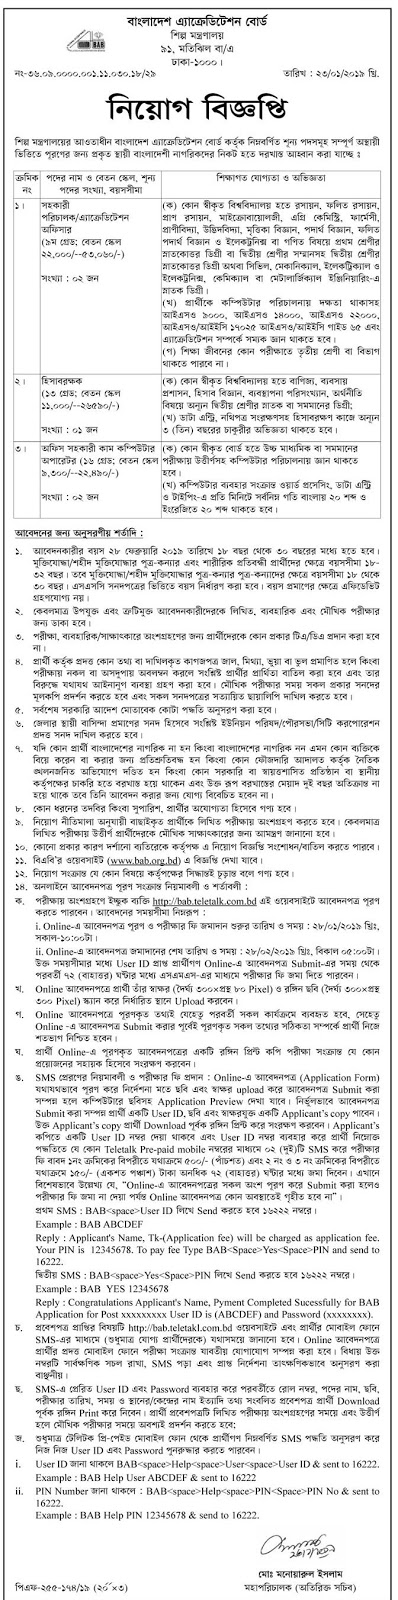 Bangladesh Accreditation Board (BAB) Job Circular 2019